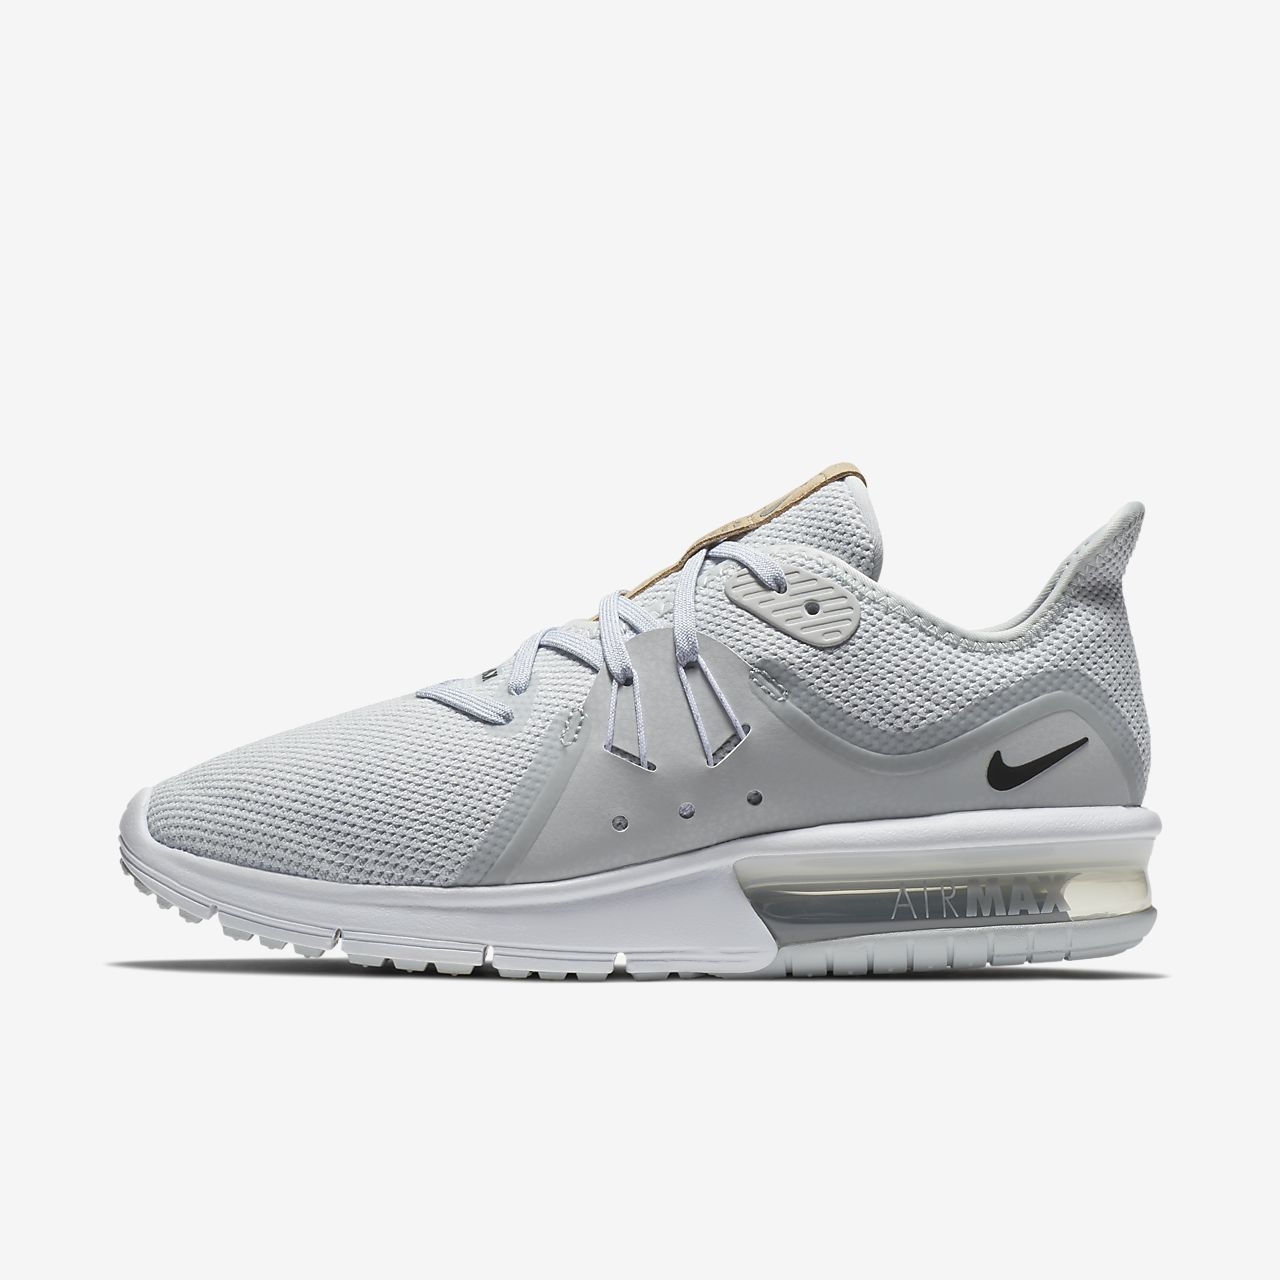 ... Nike Air Max Sequent 3 Damen-Laufschuh